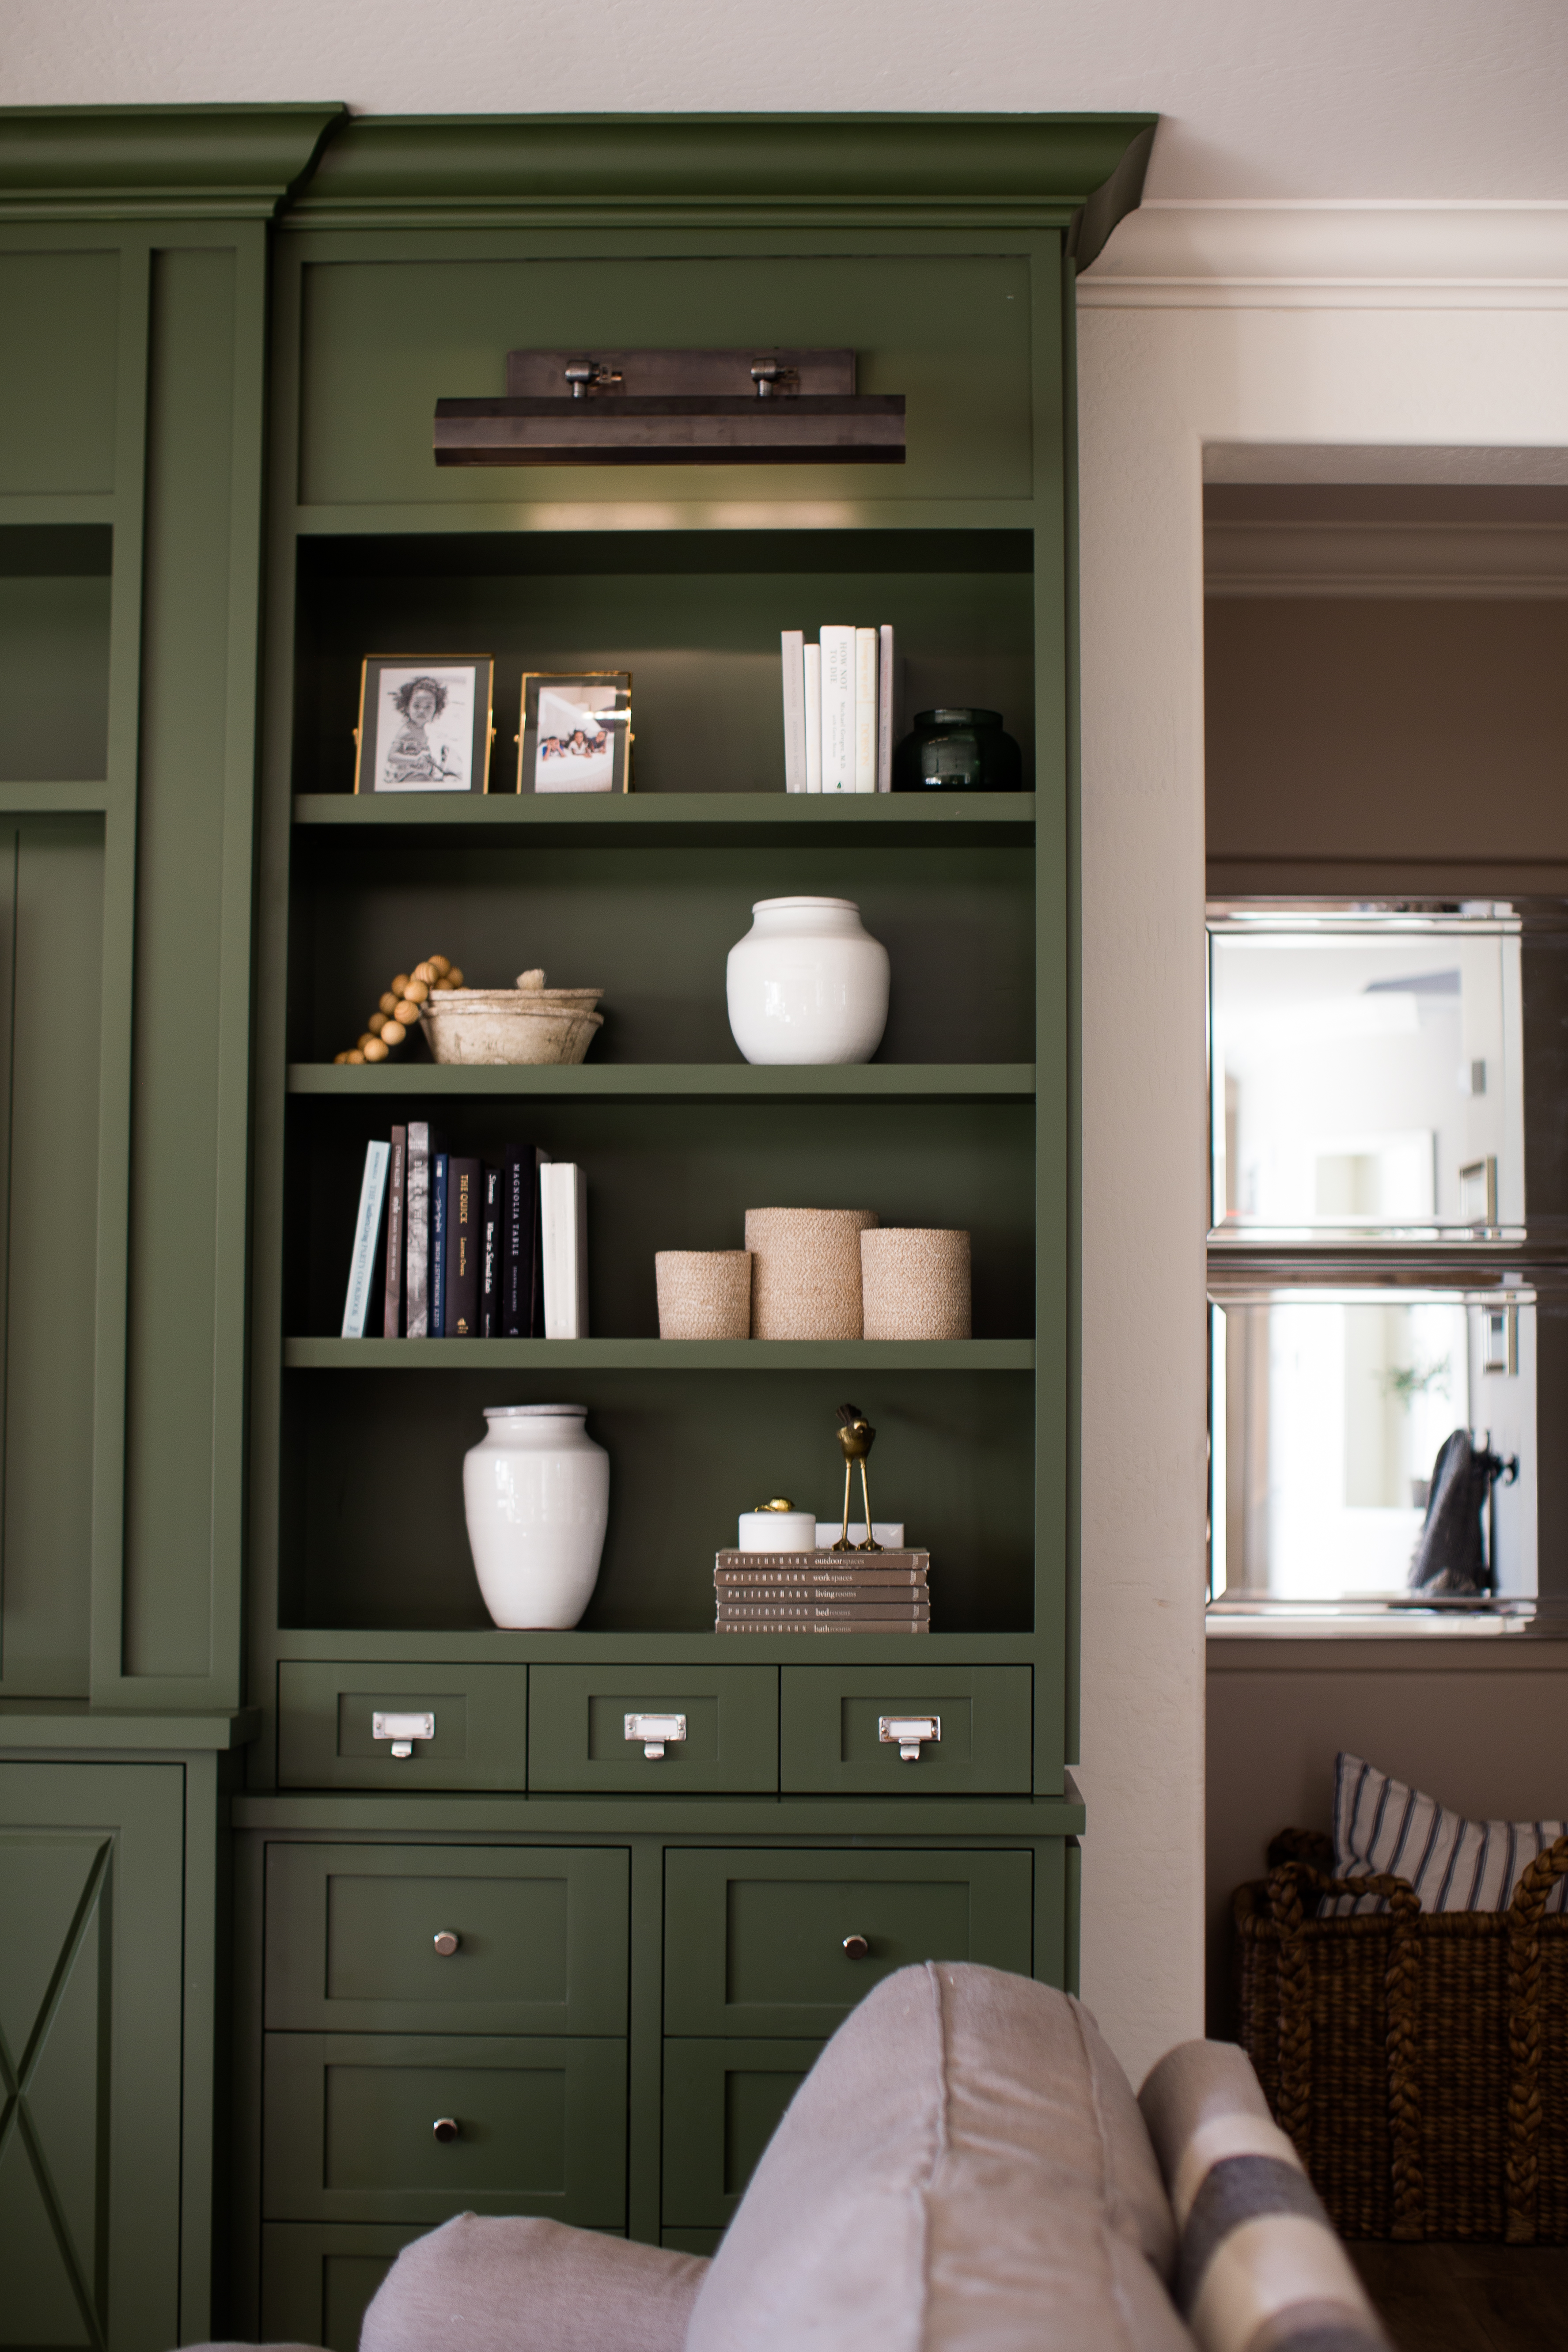 Dark Green Cabinets with Lights